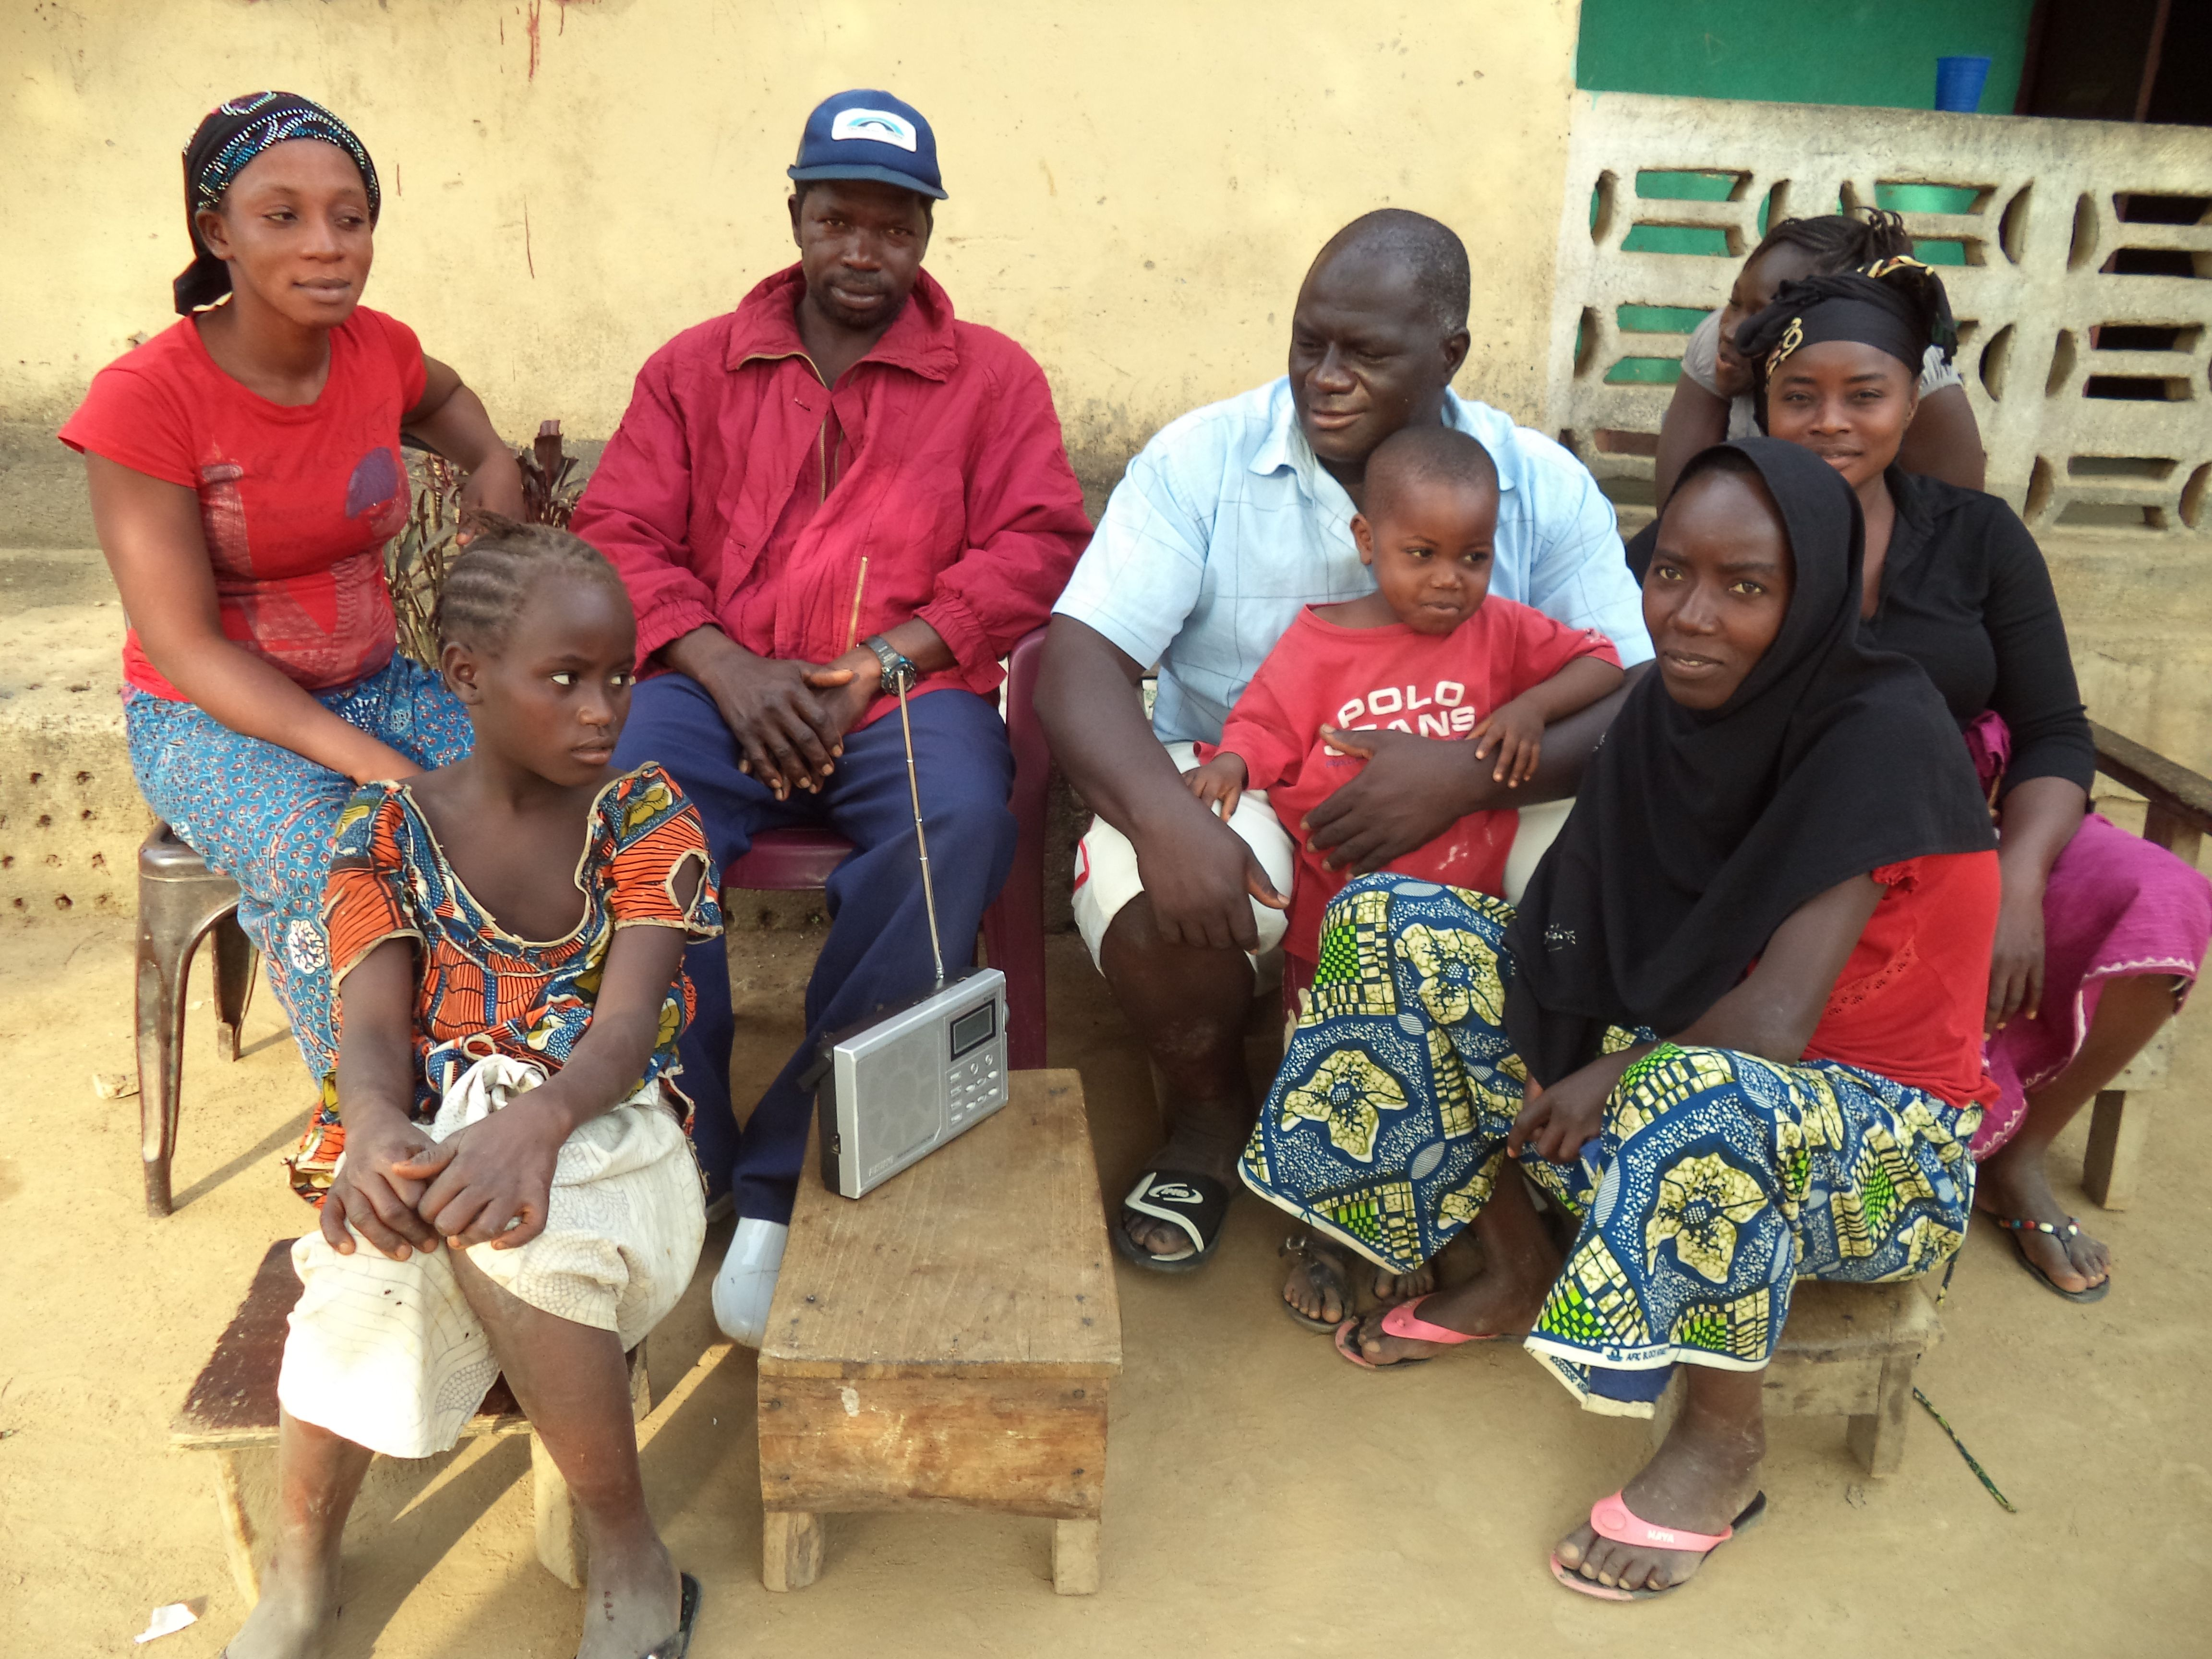 Pin on Plan's response to the Ebola outbreak in West Africa